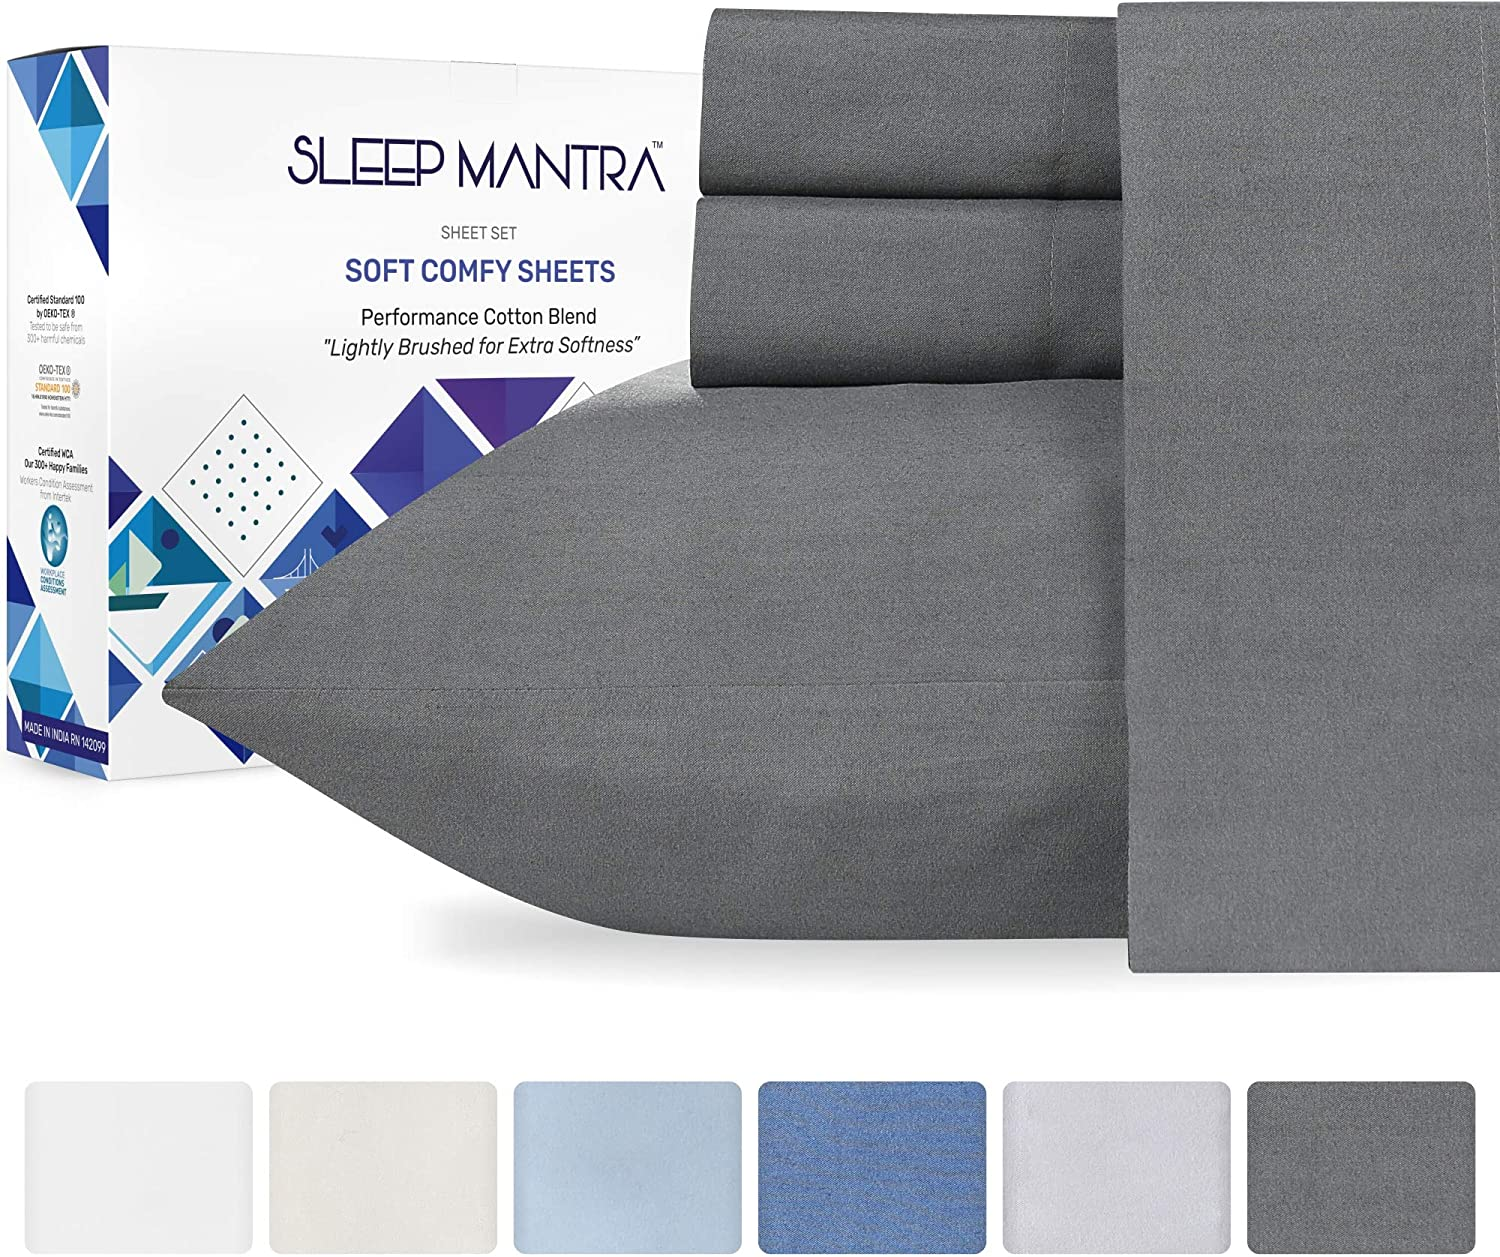 King Bed Sheets Dark Gray - 4 Piece Cotton Rich Comfortable Sheet Set, Smooth Percale Weave Bedding, Elasticized 15 Inch Deep Pocket Fits Low Profile Foam and Tall Mattresses